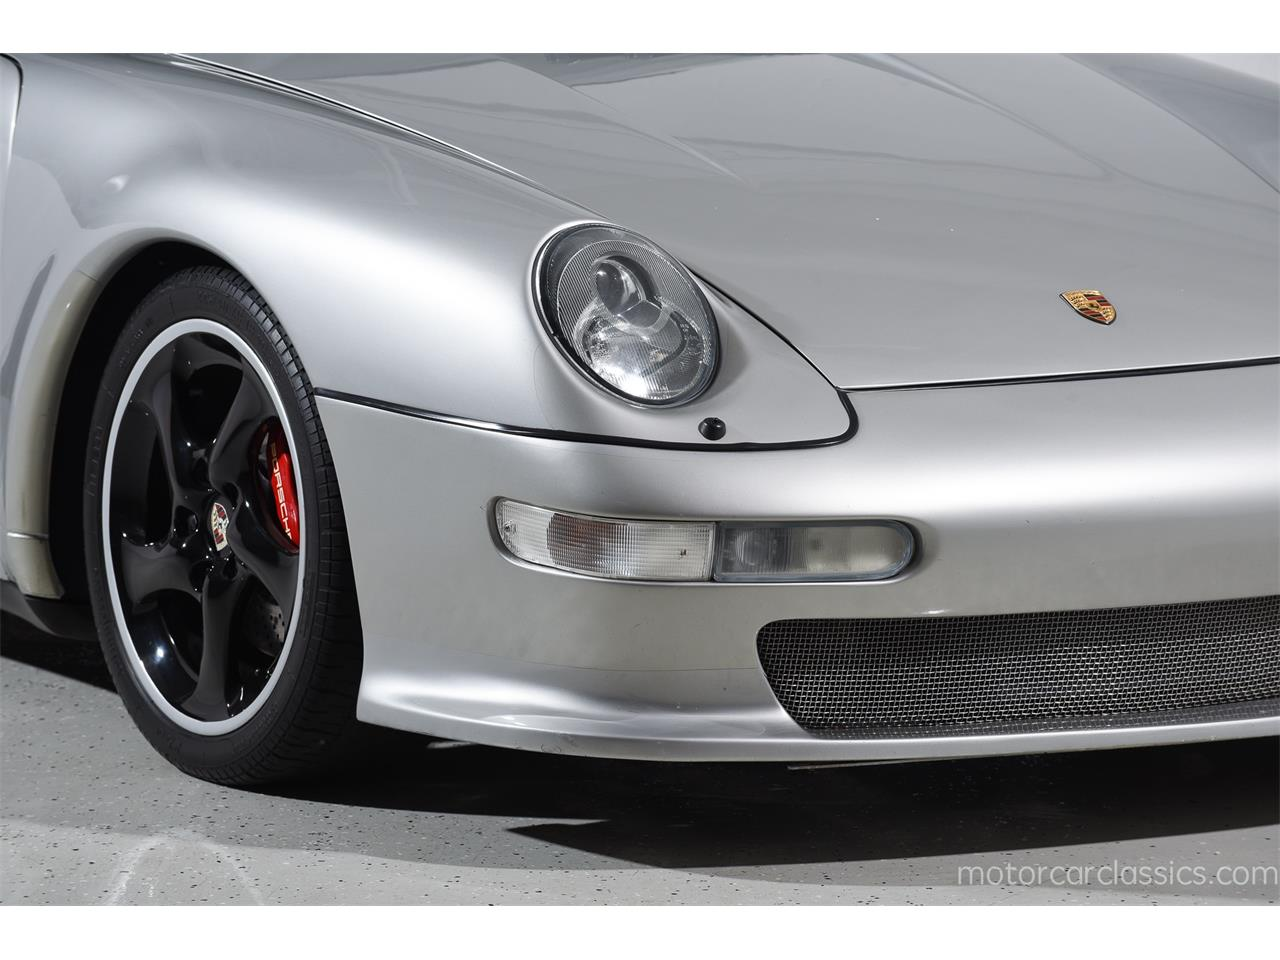 Large Picture of '96 Porsche 911 Turbo located in New York - MBOA